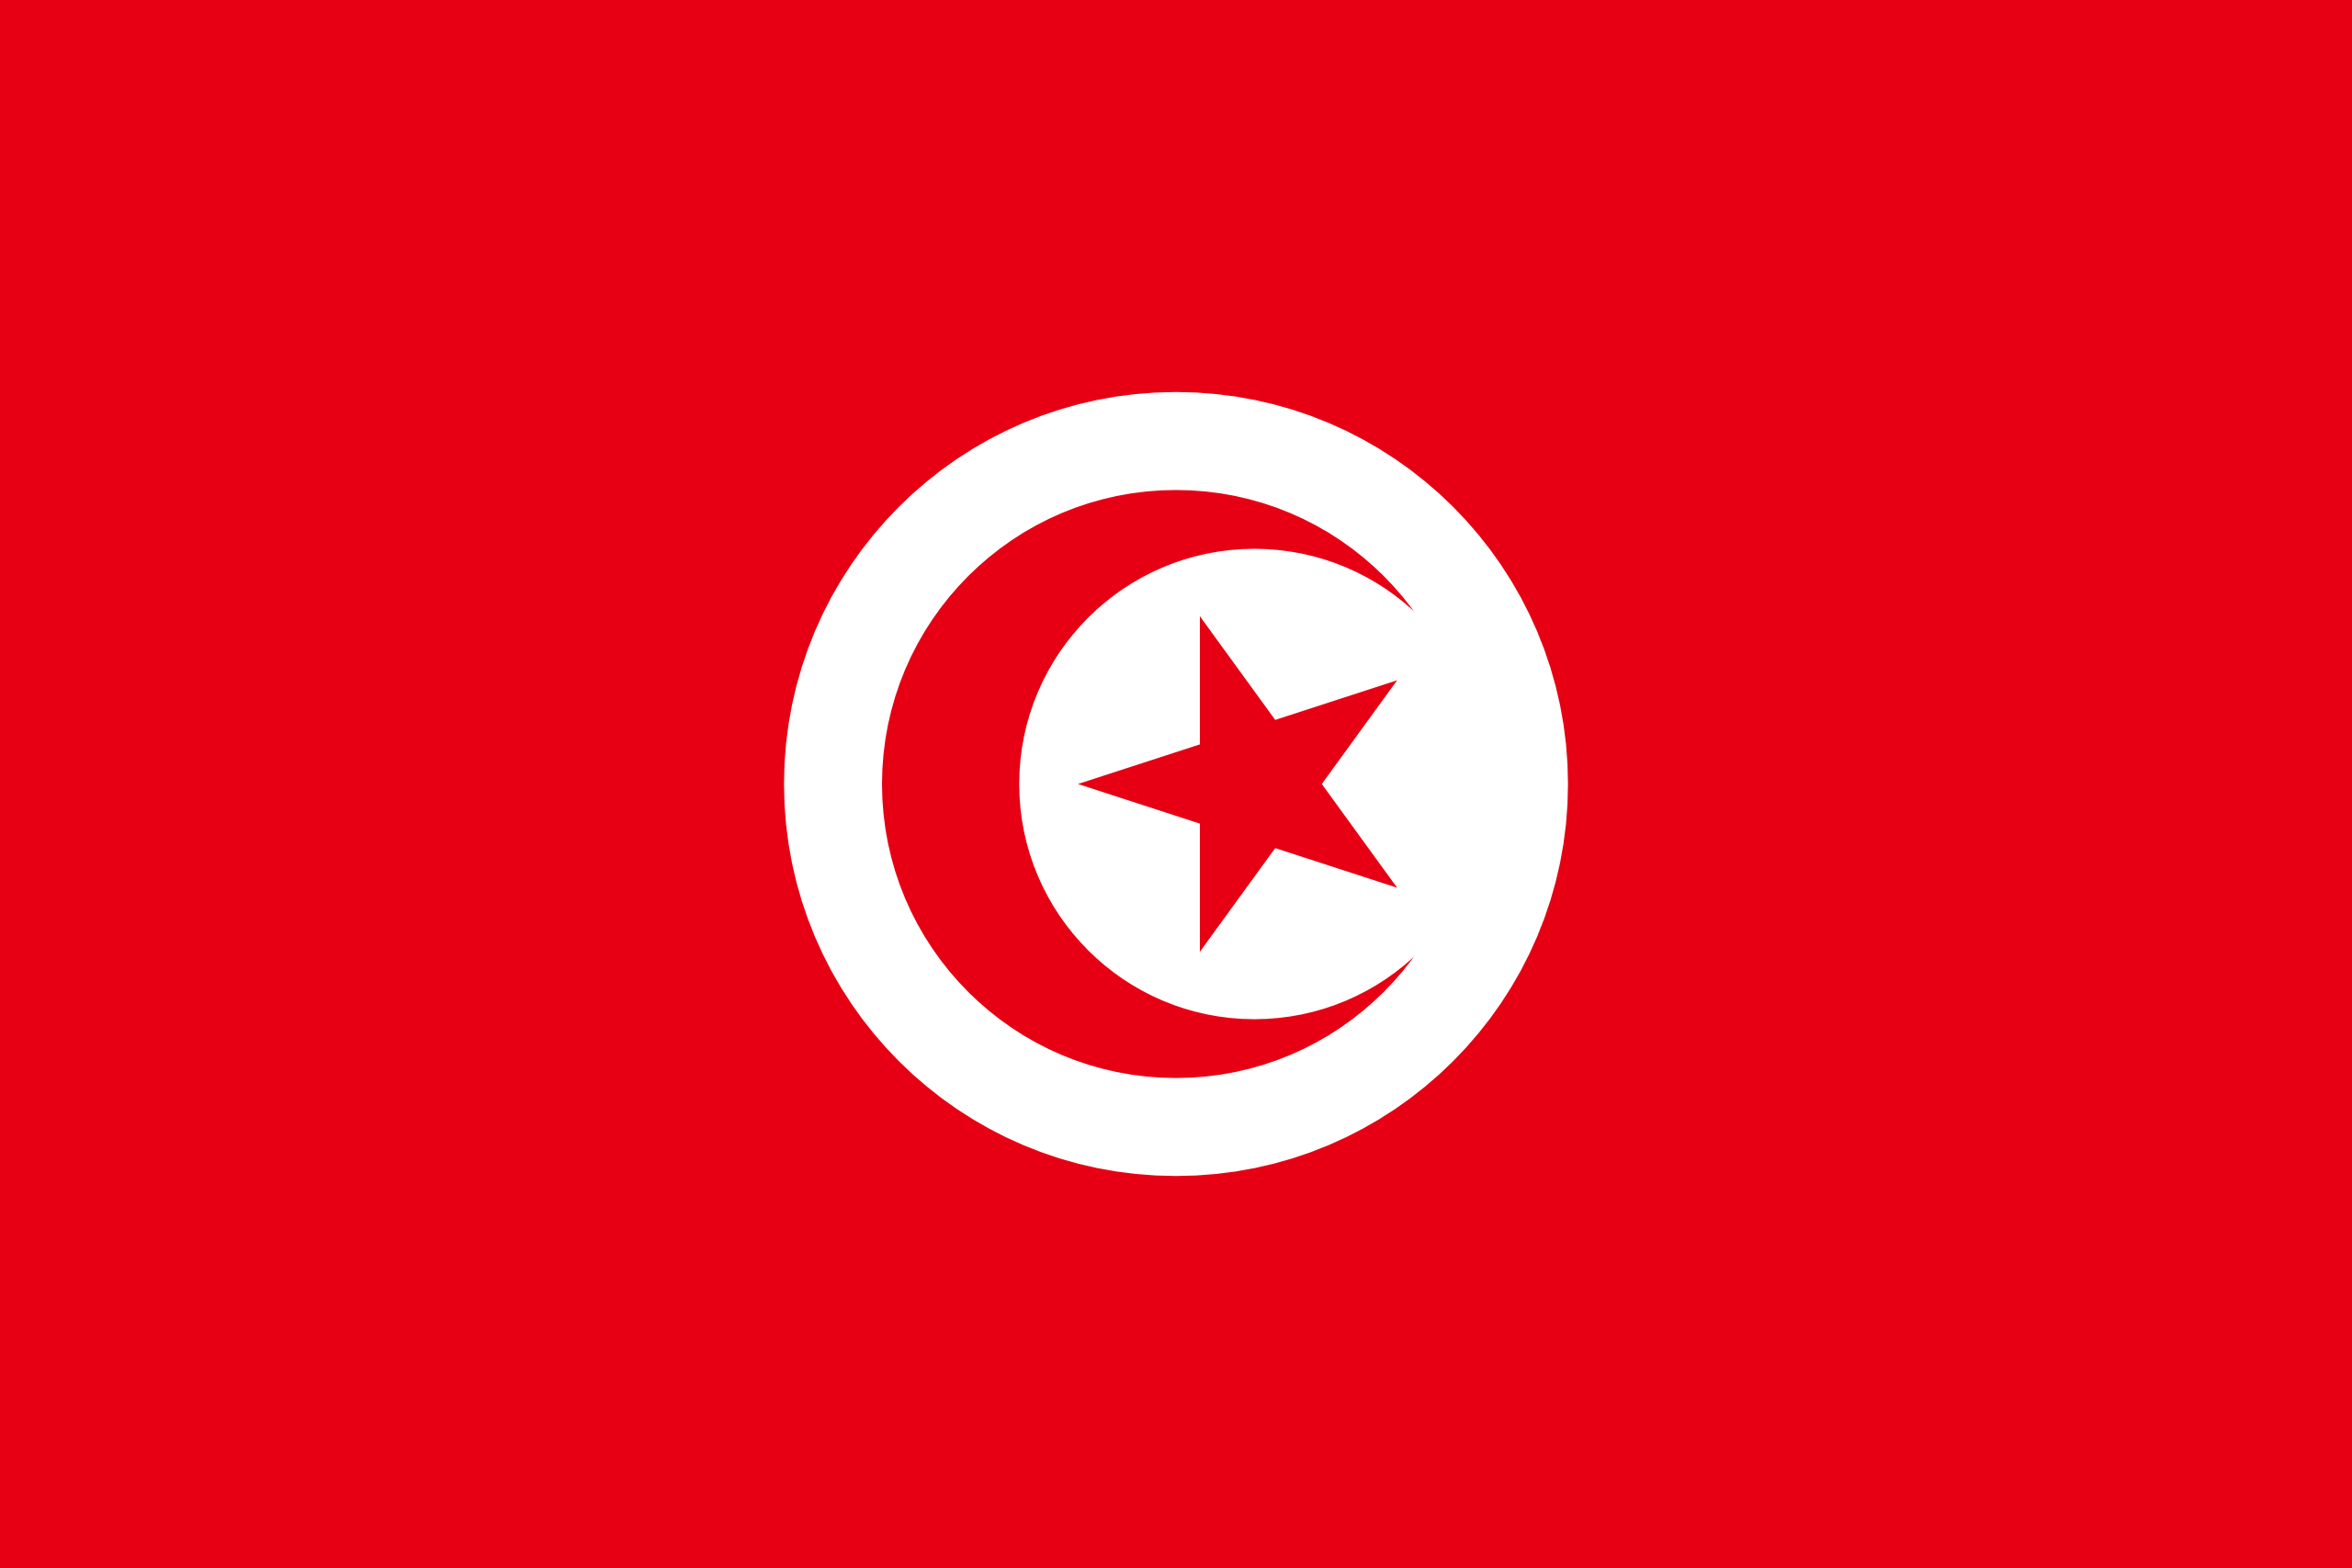 https://aerospaceexport.com/wp-content/uploads/2019/10/tunisia.png